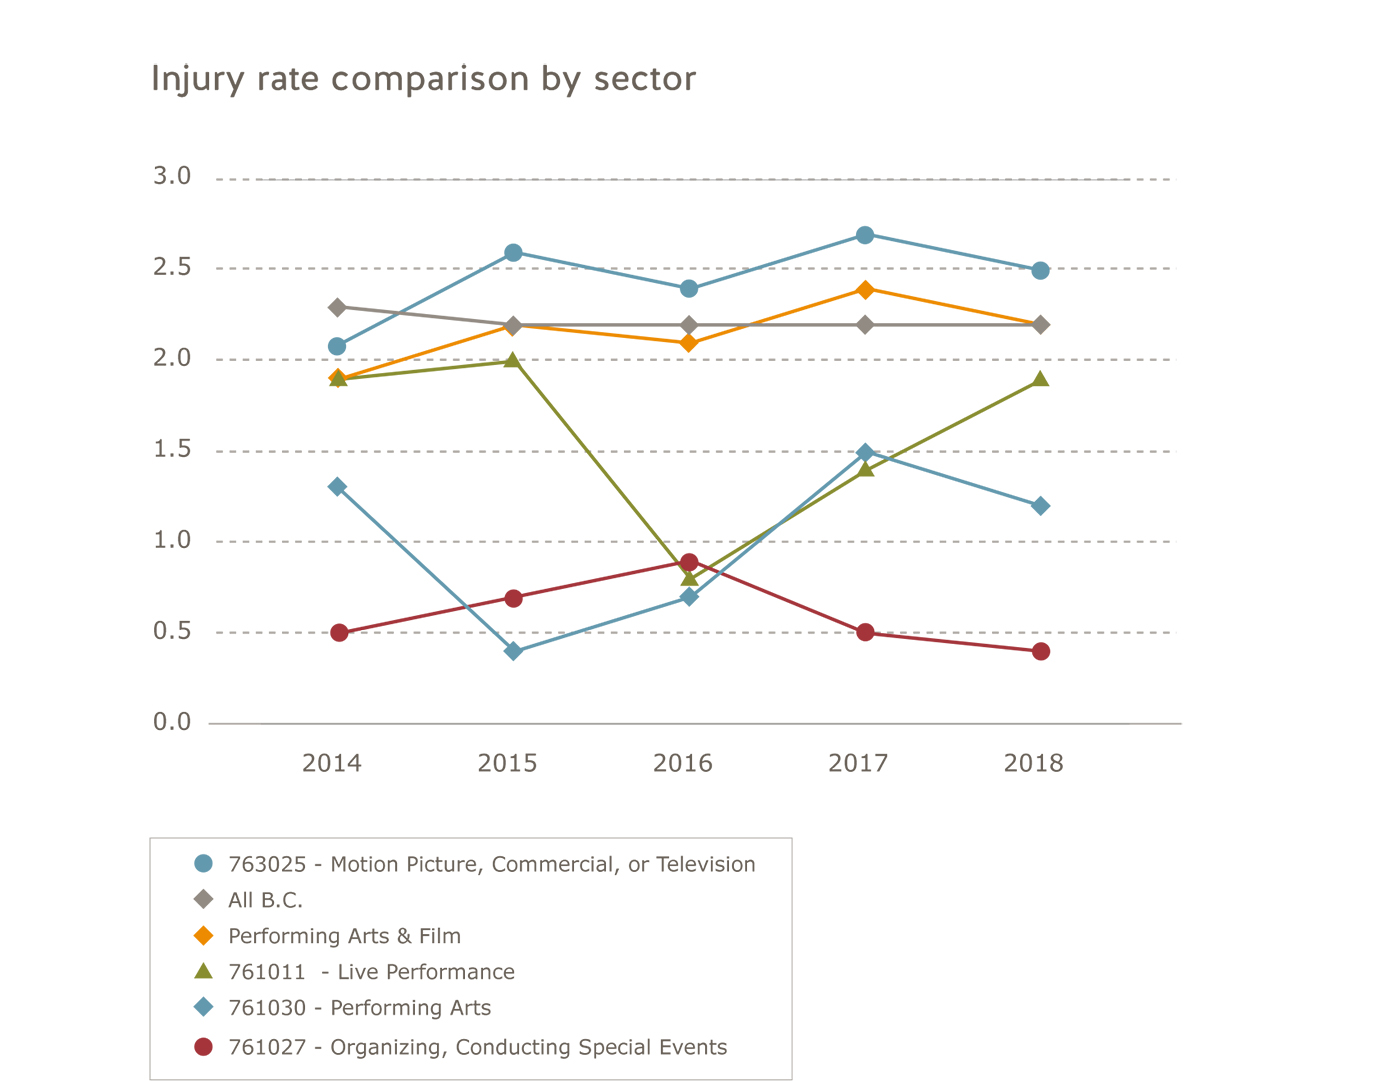 Performing arts industry injury rate comparison by sector for 2014 to 2018